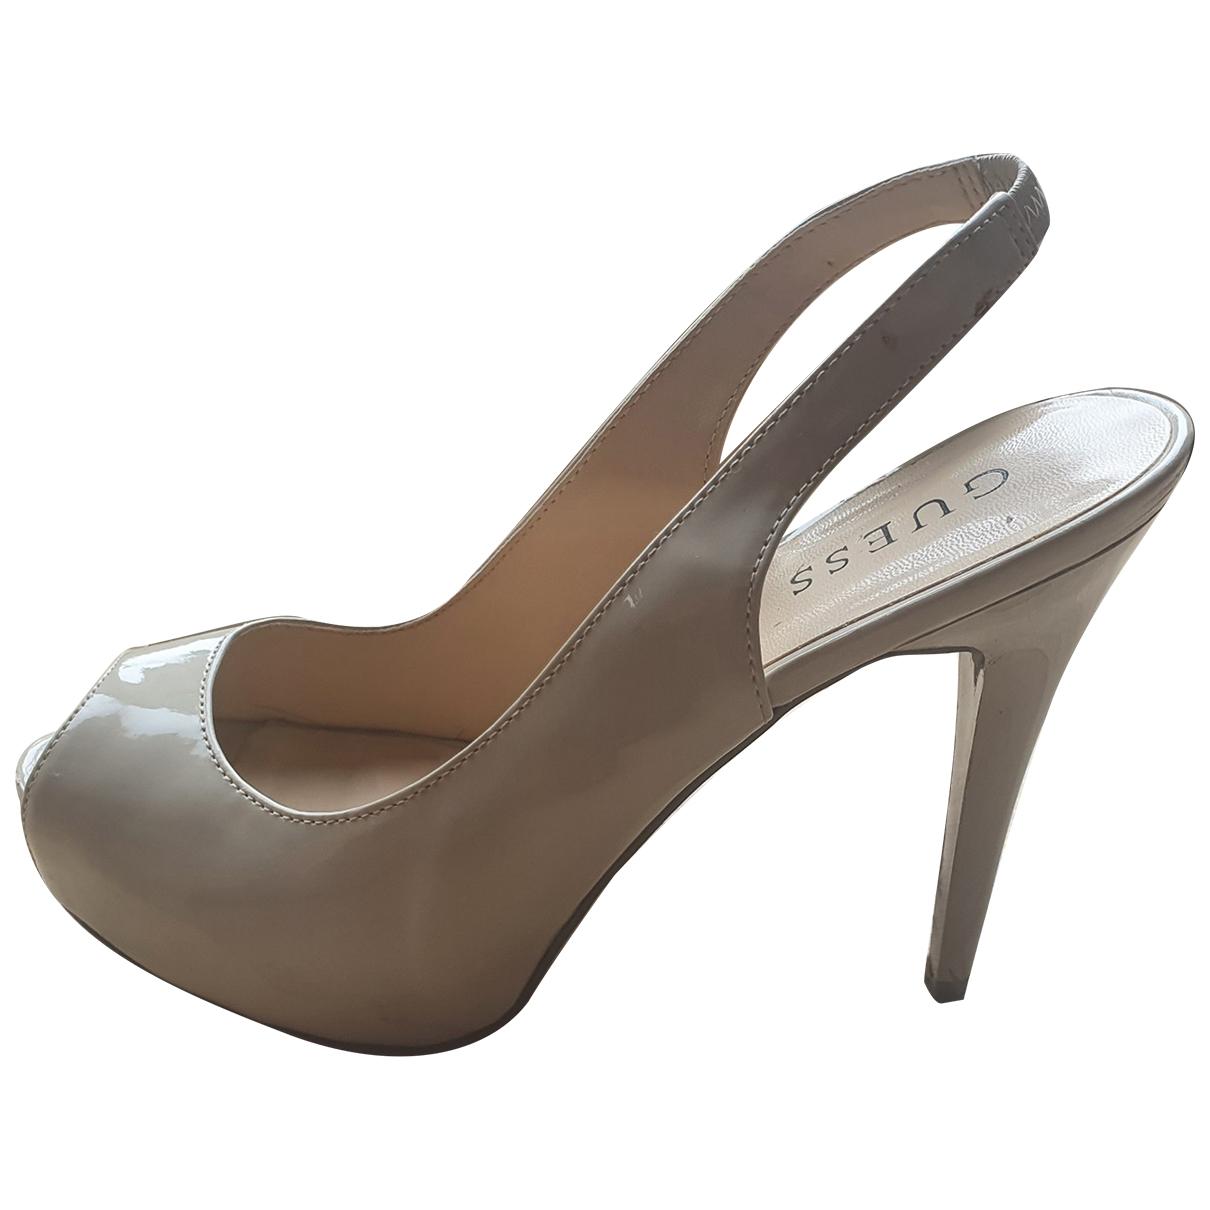 Guess \N Beige Heels for Women 8.5 US